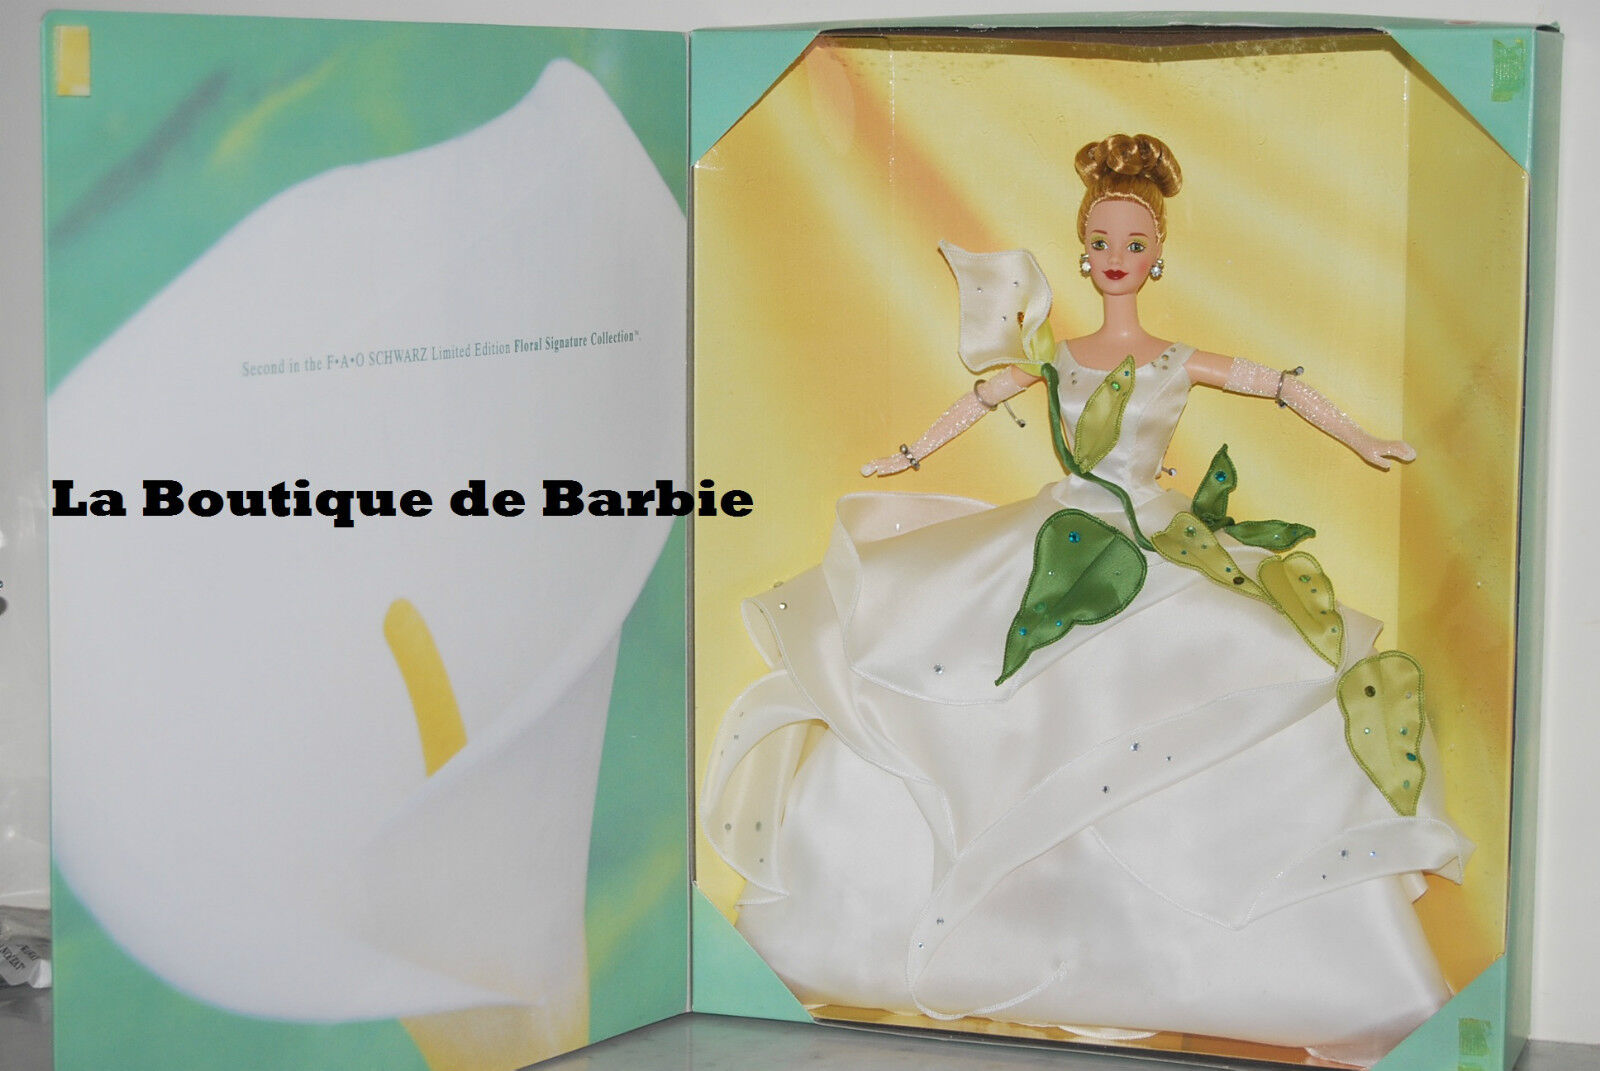 LILY BARBIE DOLL, DESIGNER COLLECTION, FLOWERS IN FASHION SERIES 17556 1997